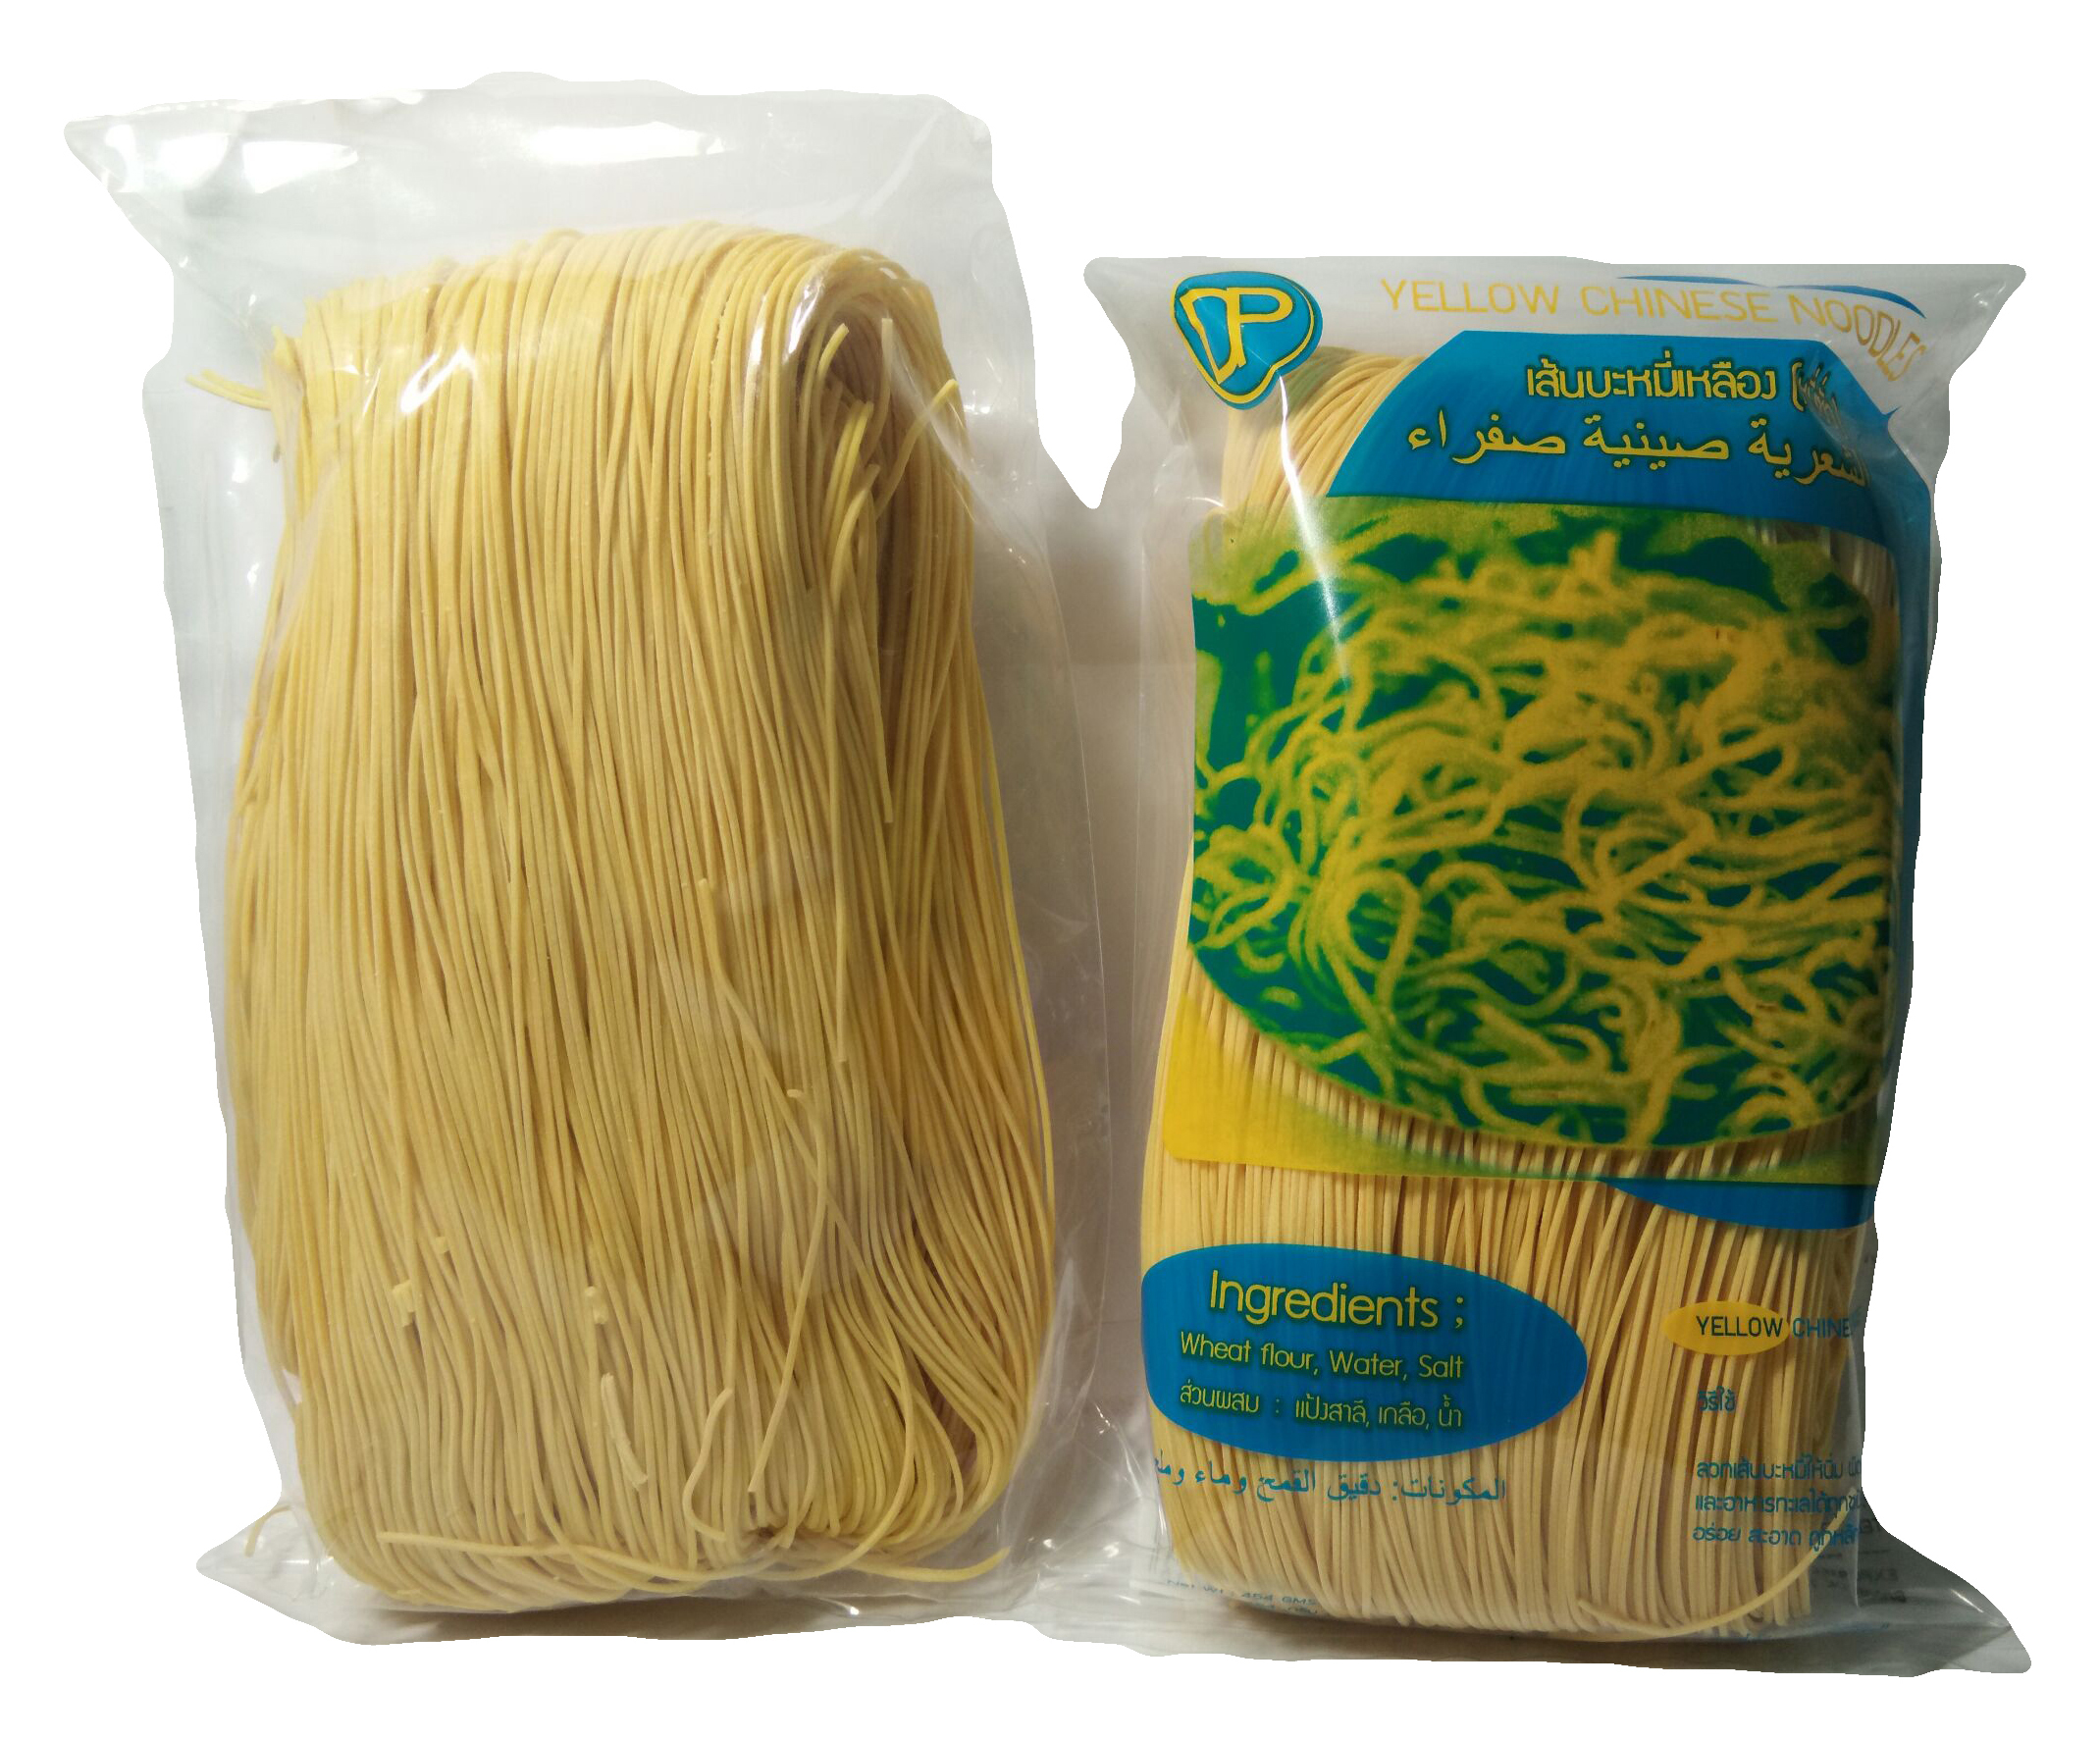 yellow chinese noodles (devpro) - yellow chinese noodles